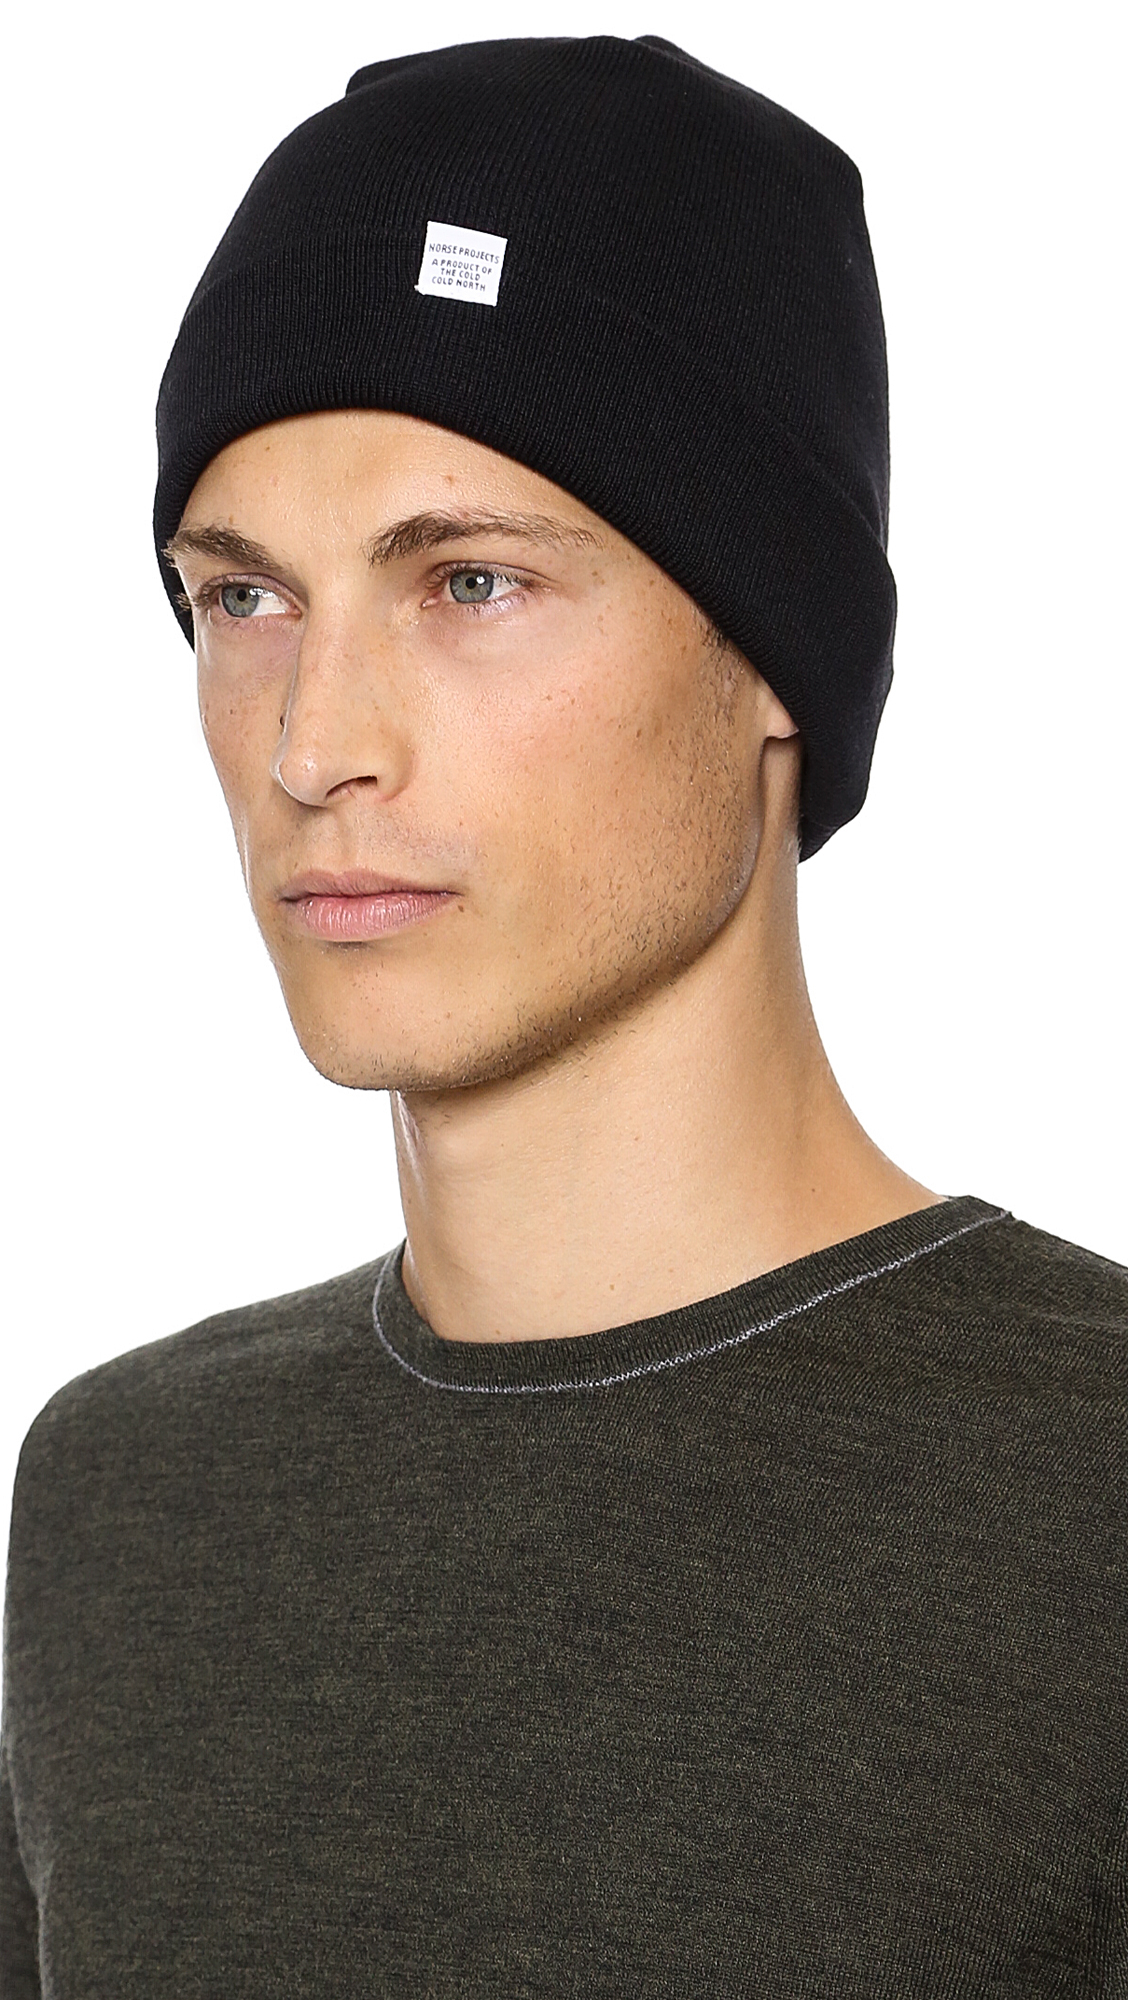 Lyst - Norse Projects Norse Top Beanie in Black for Men 23311dd1e23